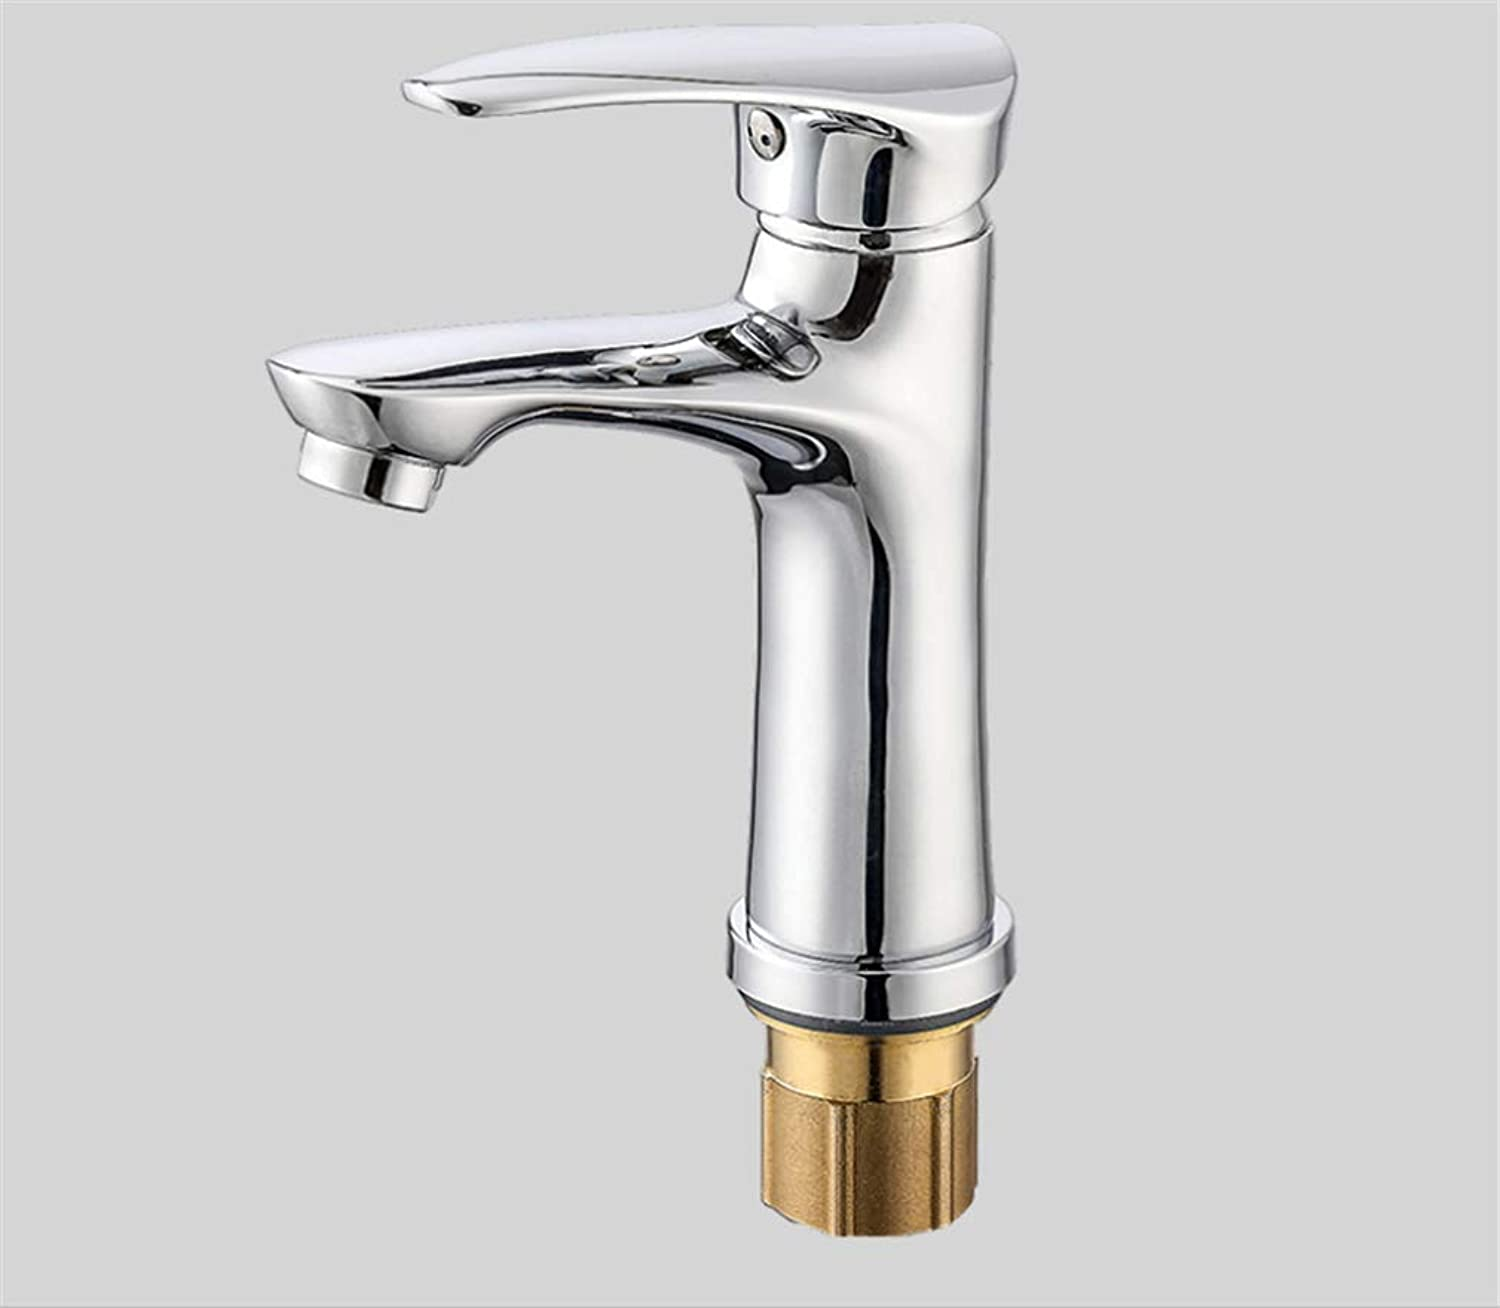 Pull Out The Pull Down Stainless Steelcopper Valve Bathroom Bathroom Hot and Cold Mixing Valve Washbasin Basin Basin Faucet Shark Single Hole